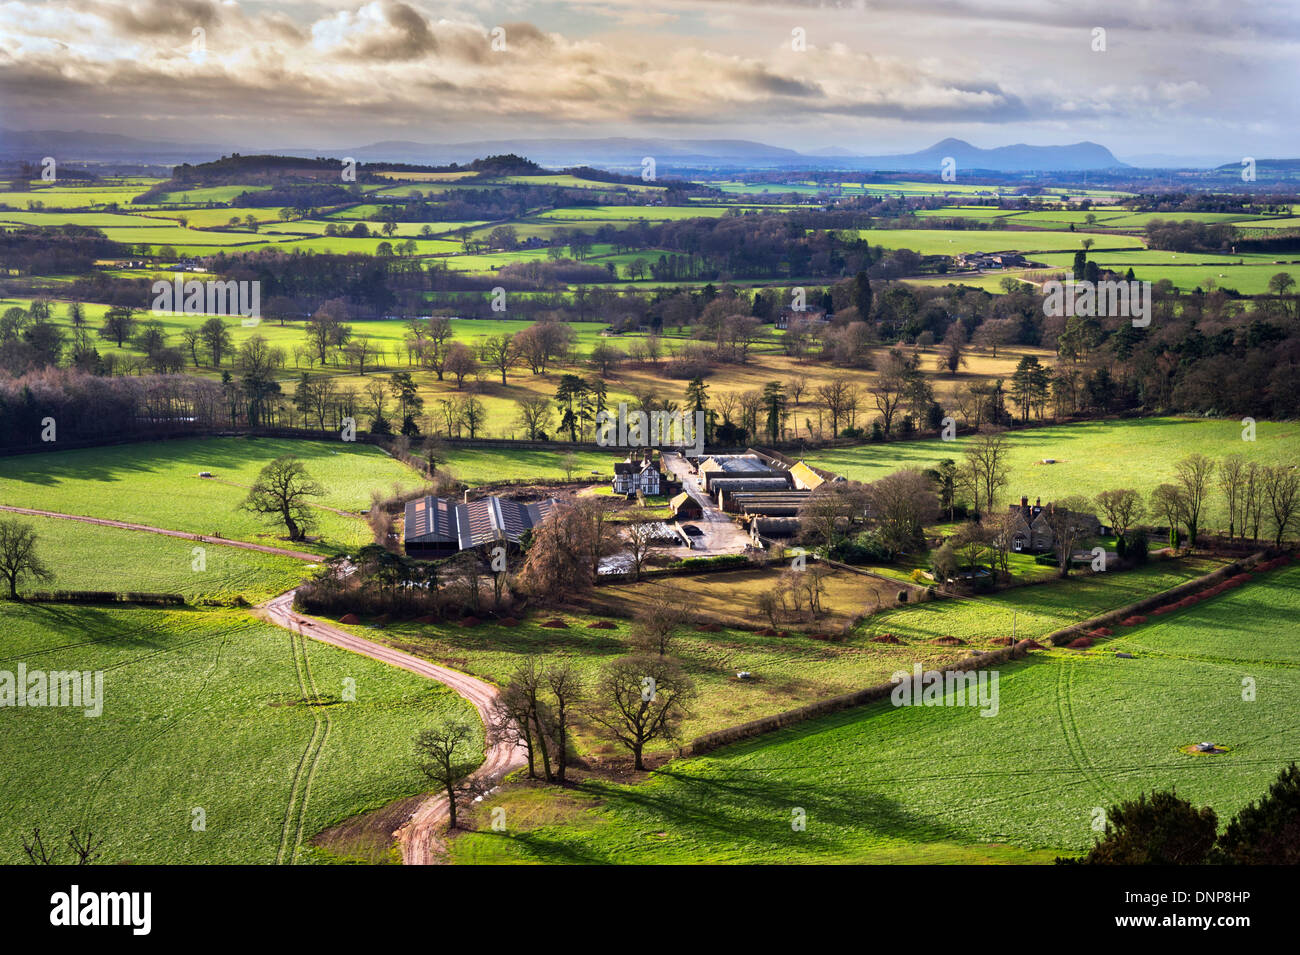 Grinshill, Shropshire, England, UK. View west towards Long Mountain and The Breiddon Hills on the Welsh borders - Stock Image